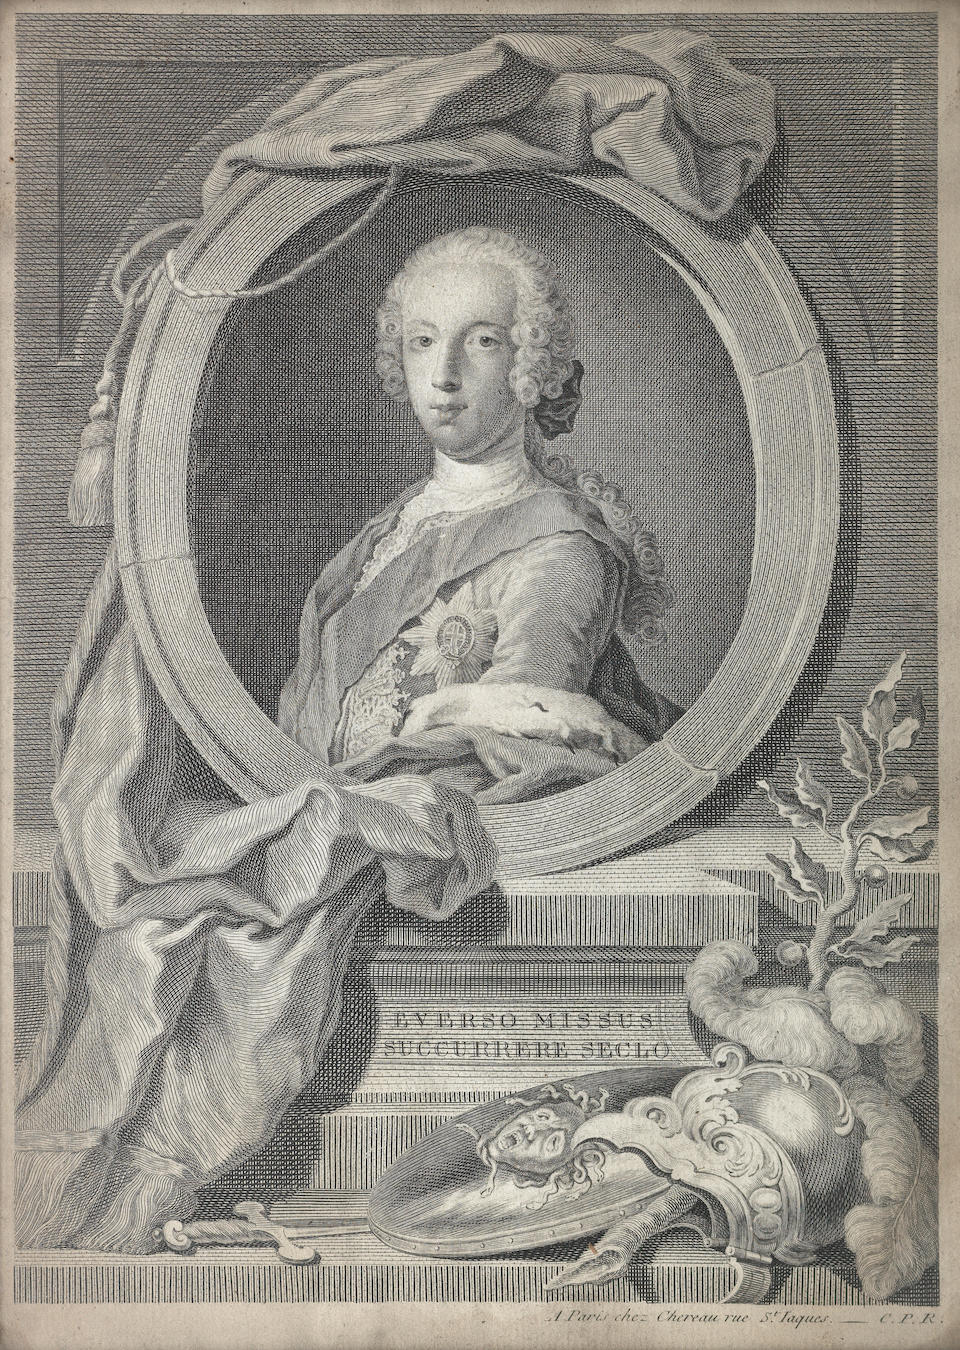 An engraving of Charles Edward Stuart By J. G. Will after L. Tocque And another engraving of Charles Edward Stuart. (2)